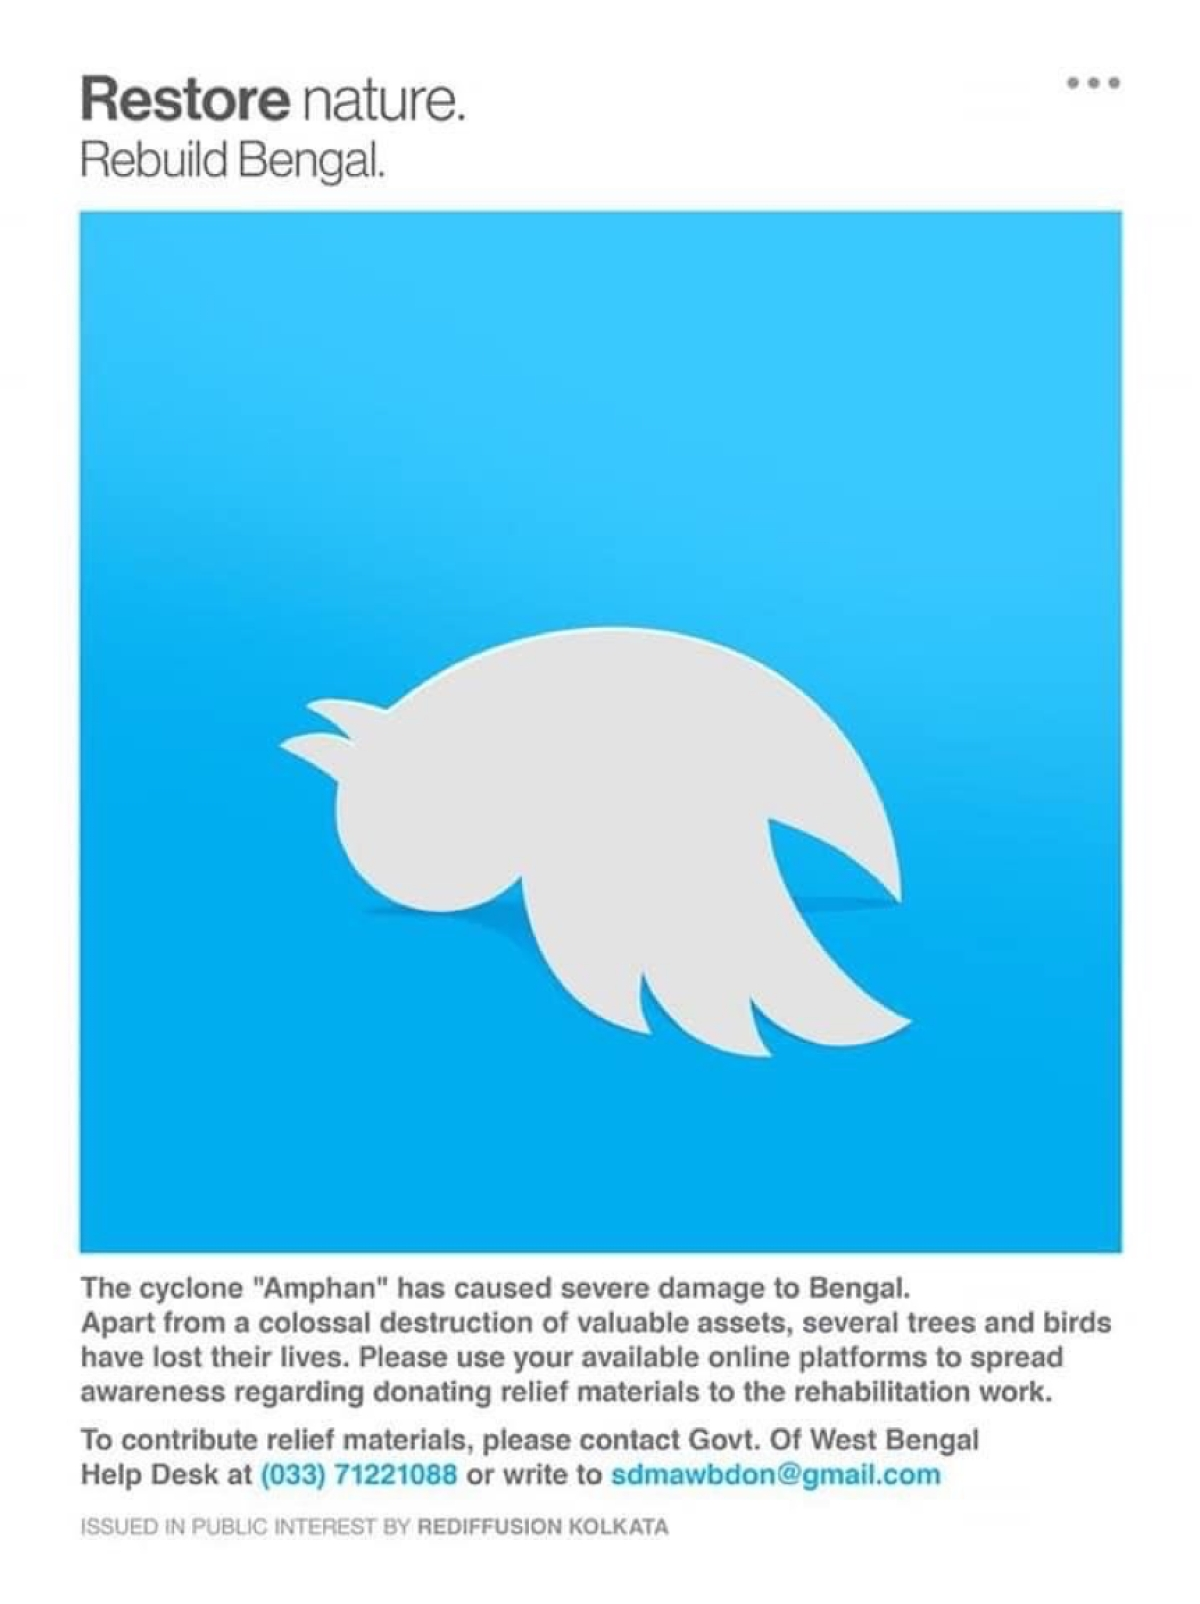 Rediffusion's campaign reimagines social logos to portray disconnectivity